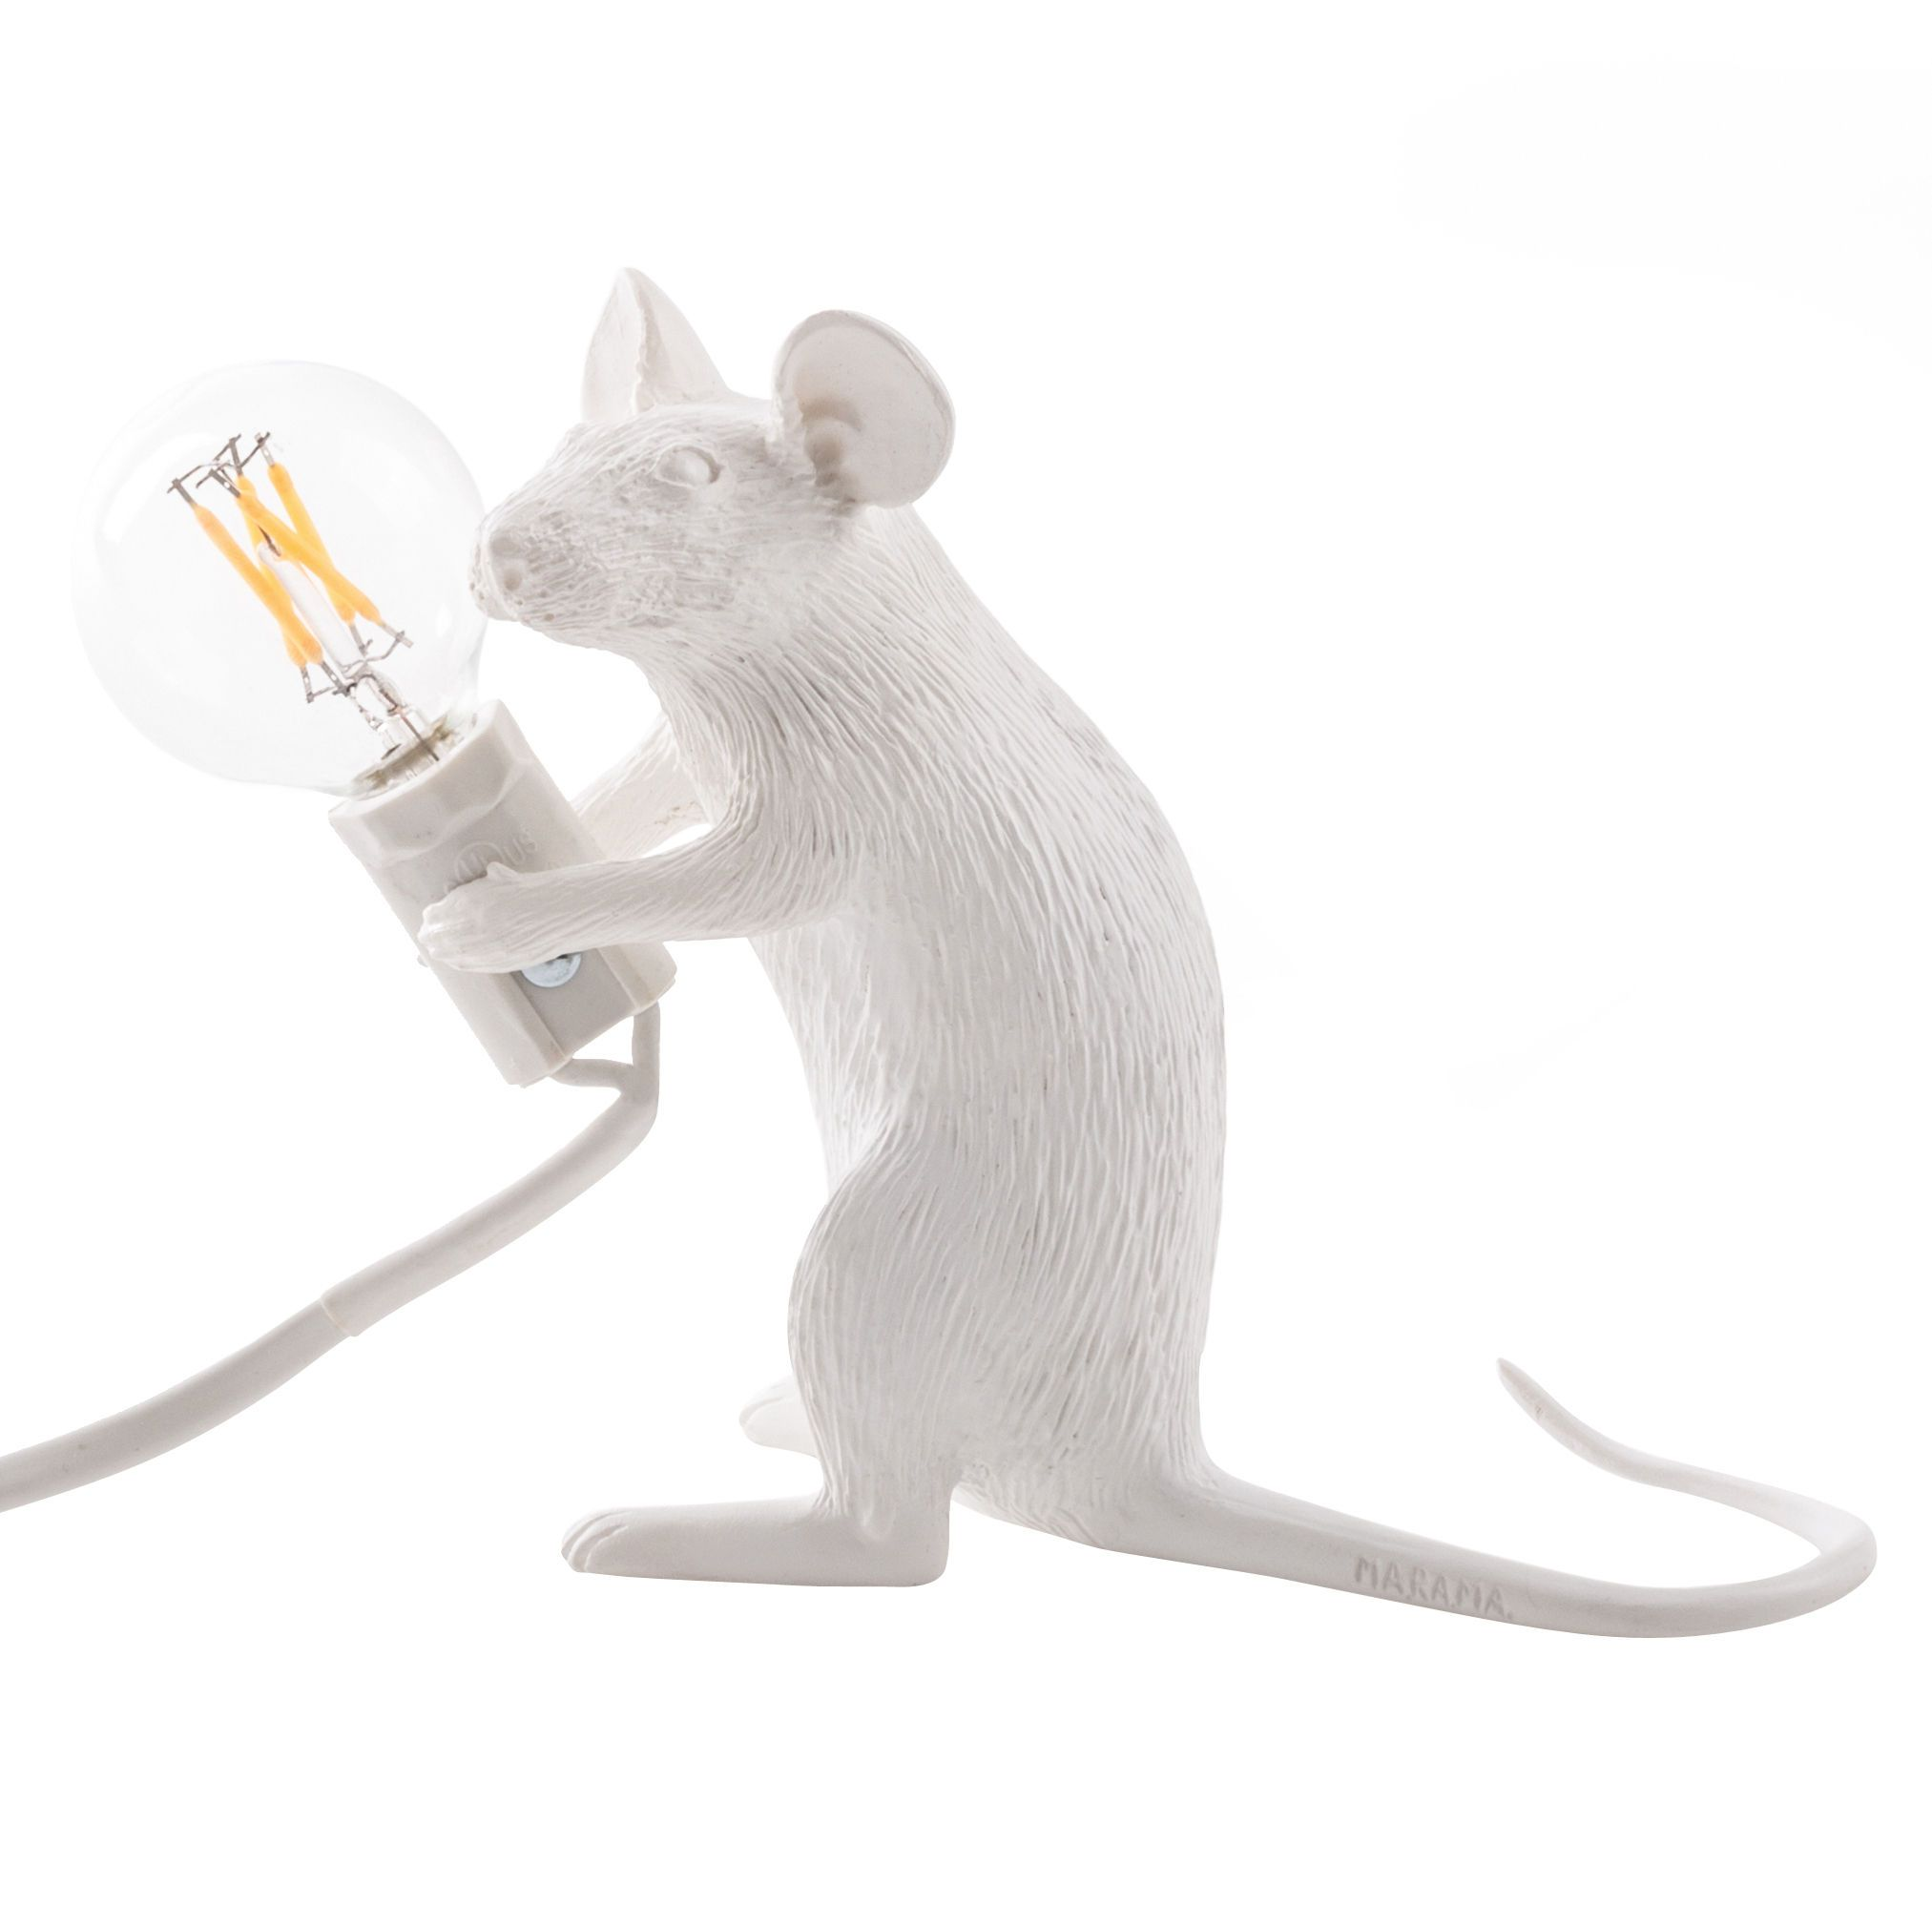 Mouse Standing #1 Table lamp Standing / White by Seletti - Design furniture and decoration with Made in Design